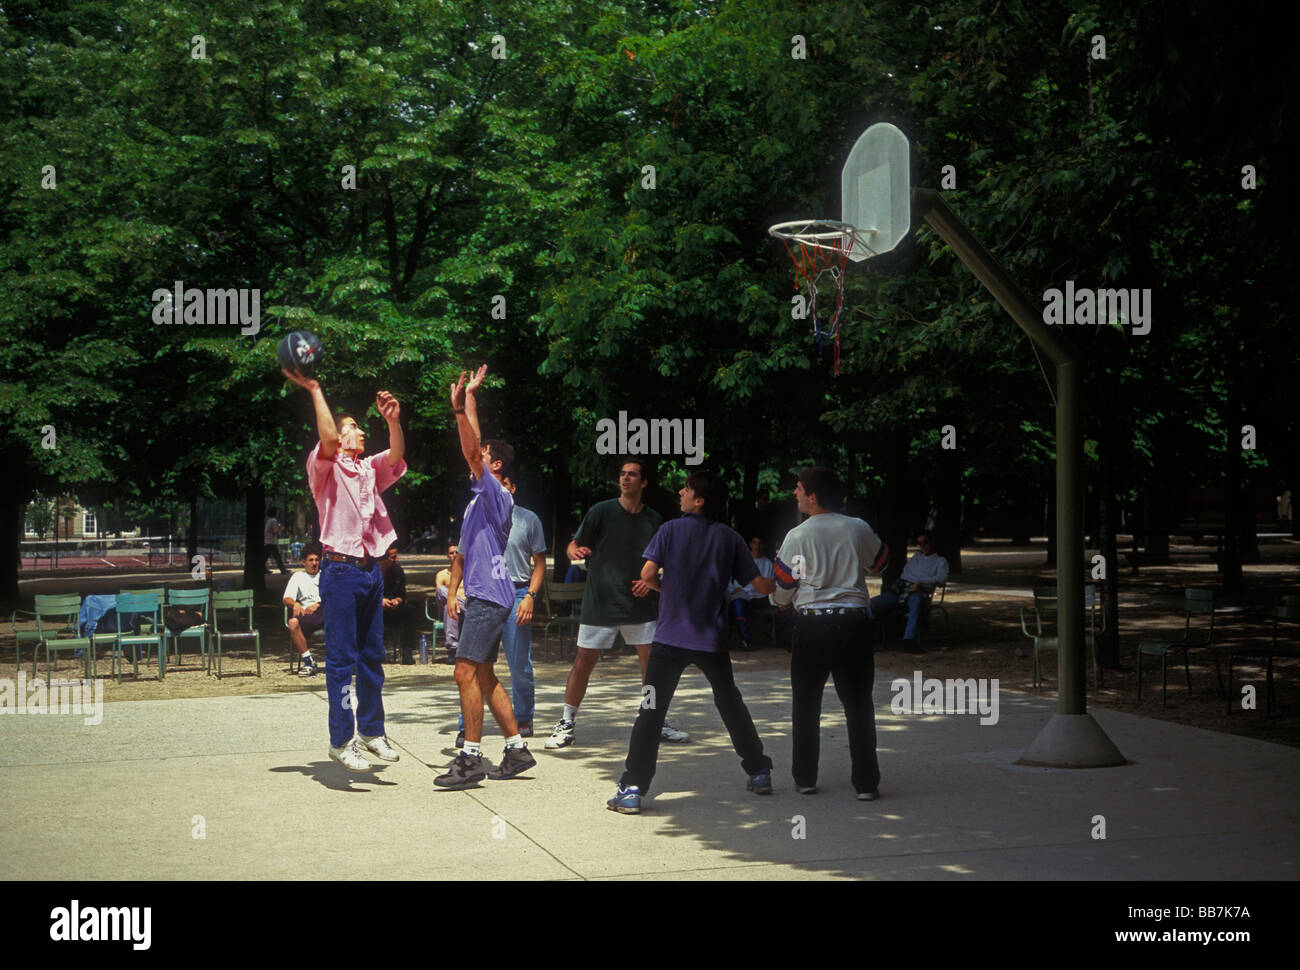 French men playing basketball, French men, basketball players, playing basketball, Luxembourg Gardens, Paris, Ile - Stock Image